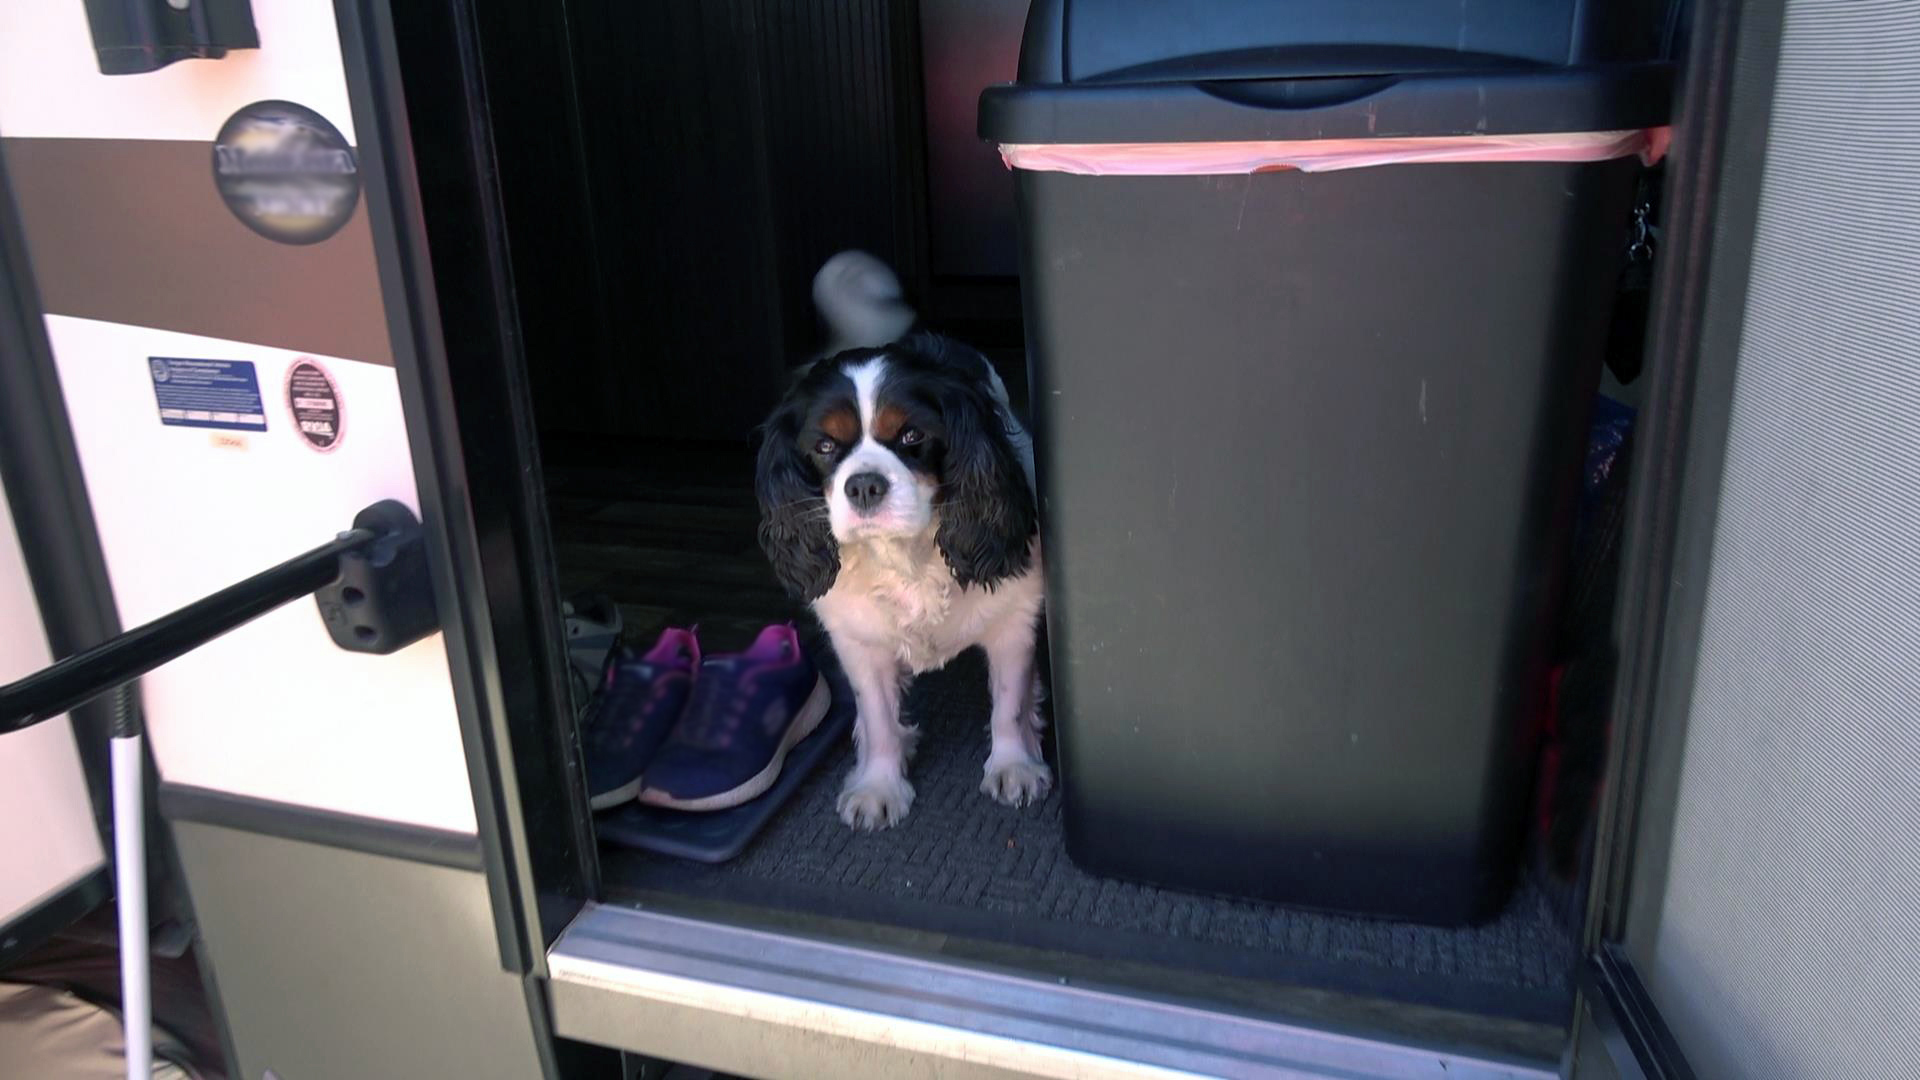 Leaving Barkley in the RV